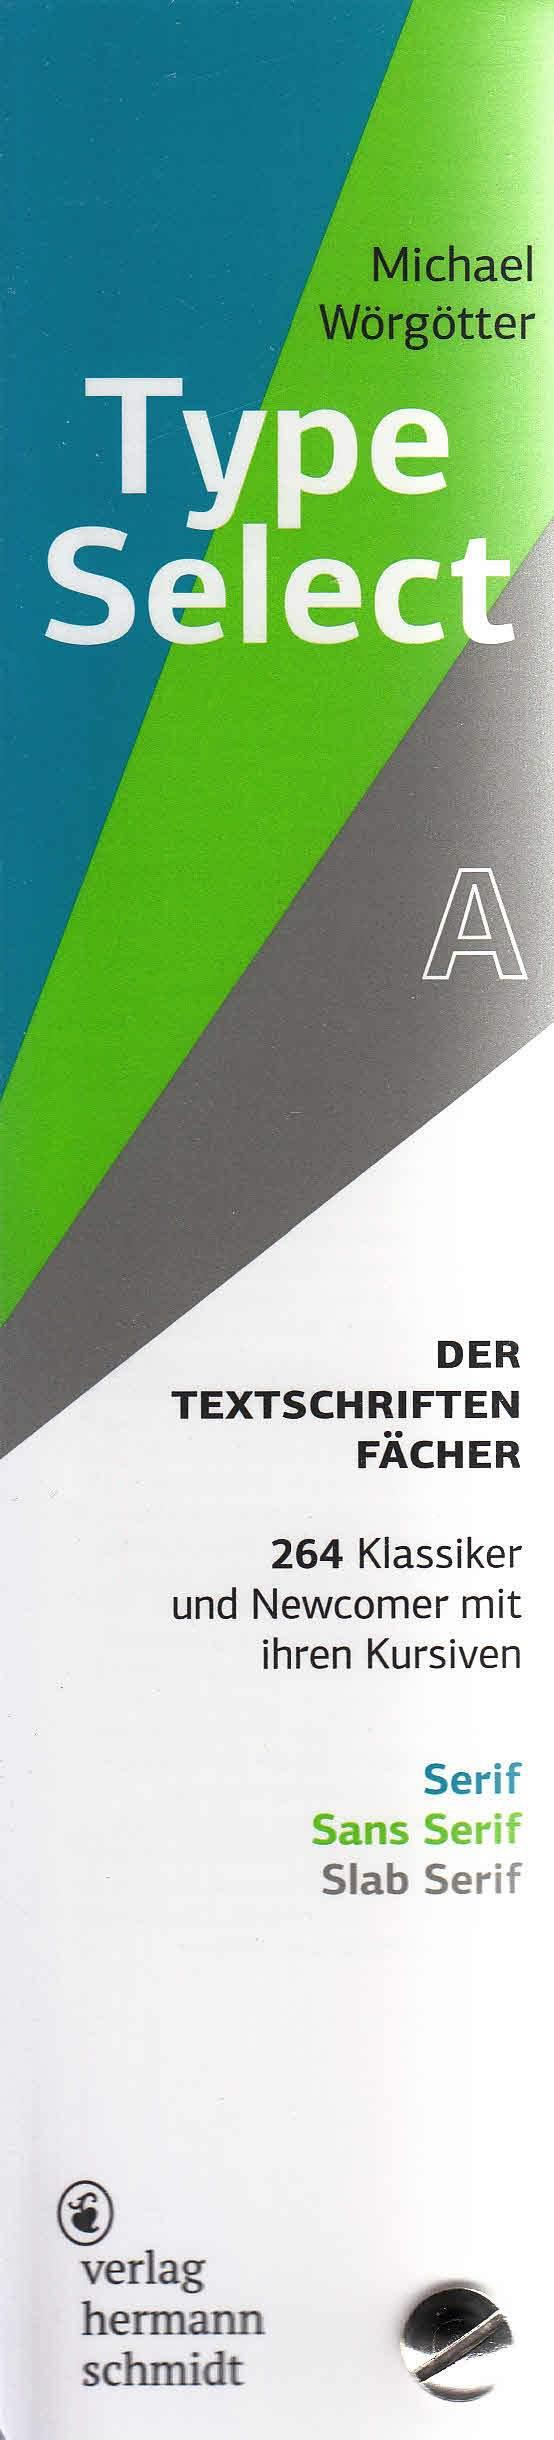 Type select /allemand